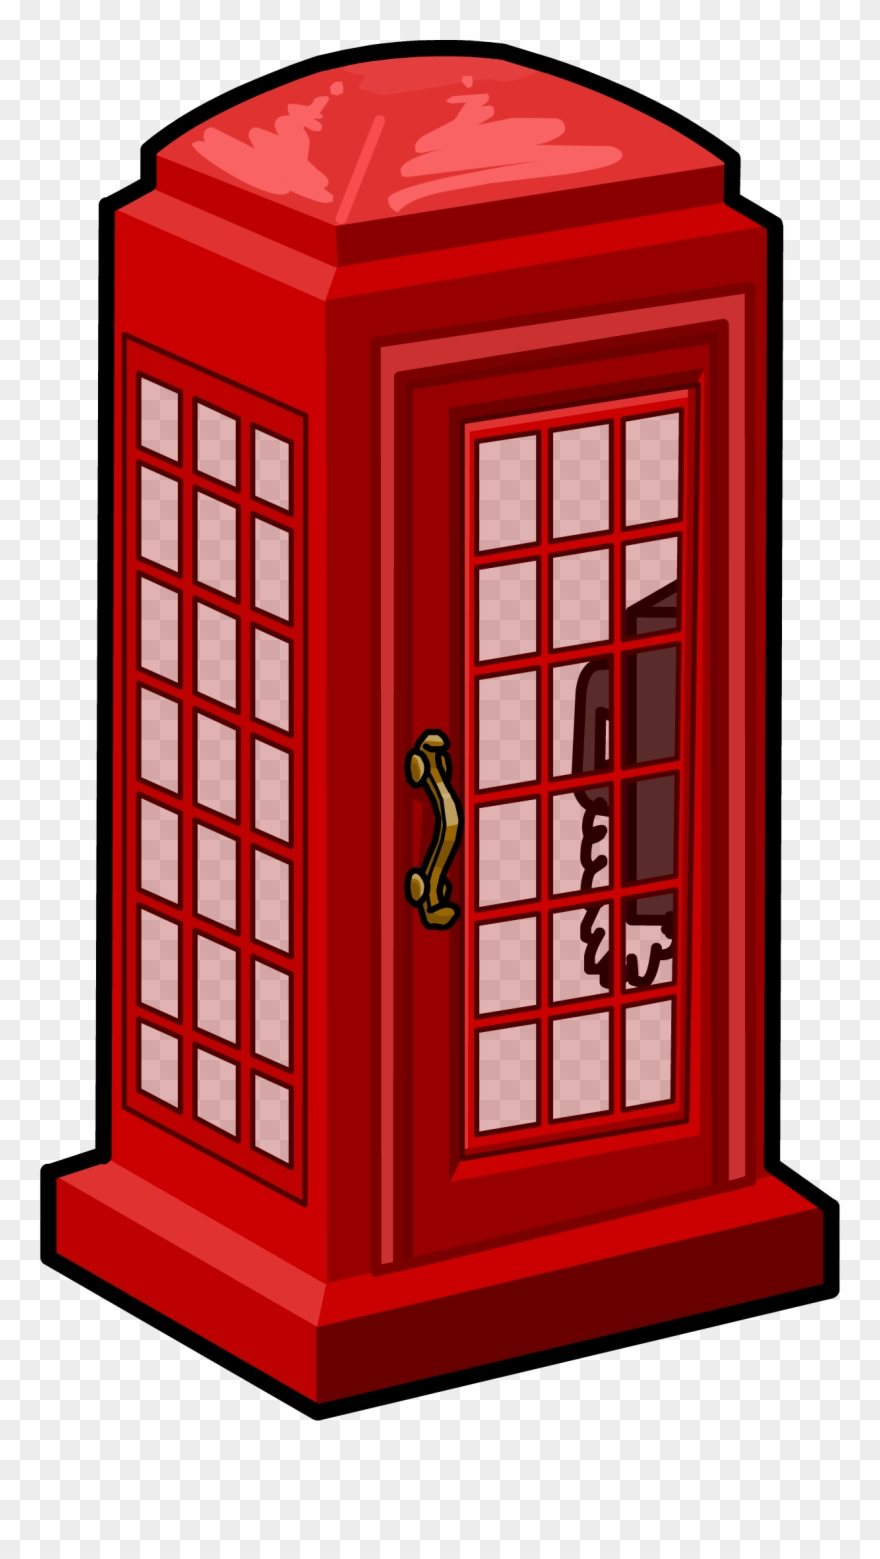 png royalty free library Booth clipart icon british. Phone clip art telephone.